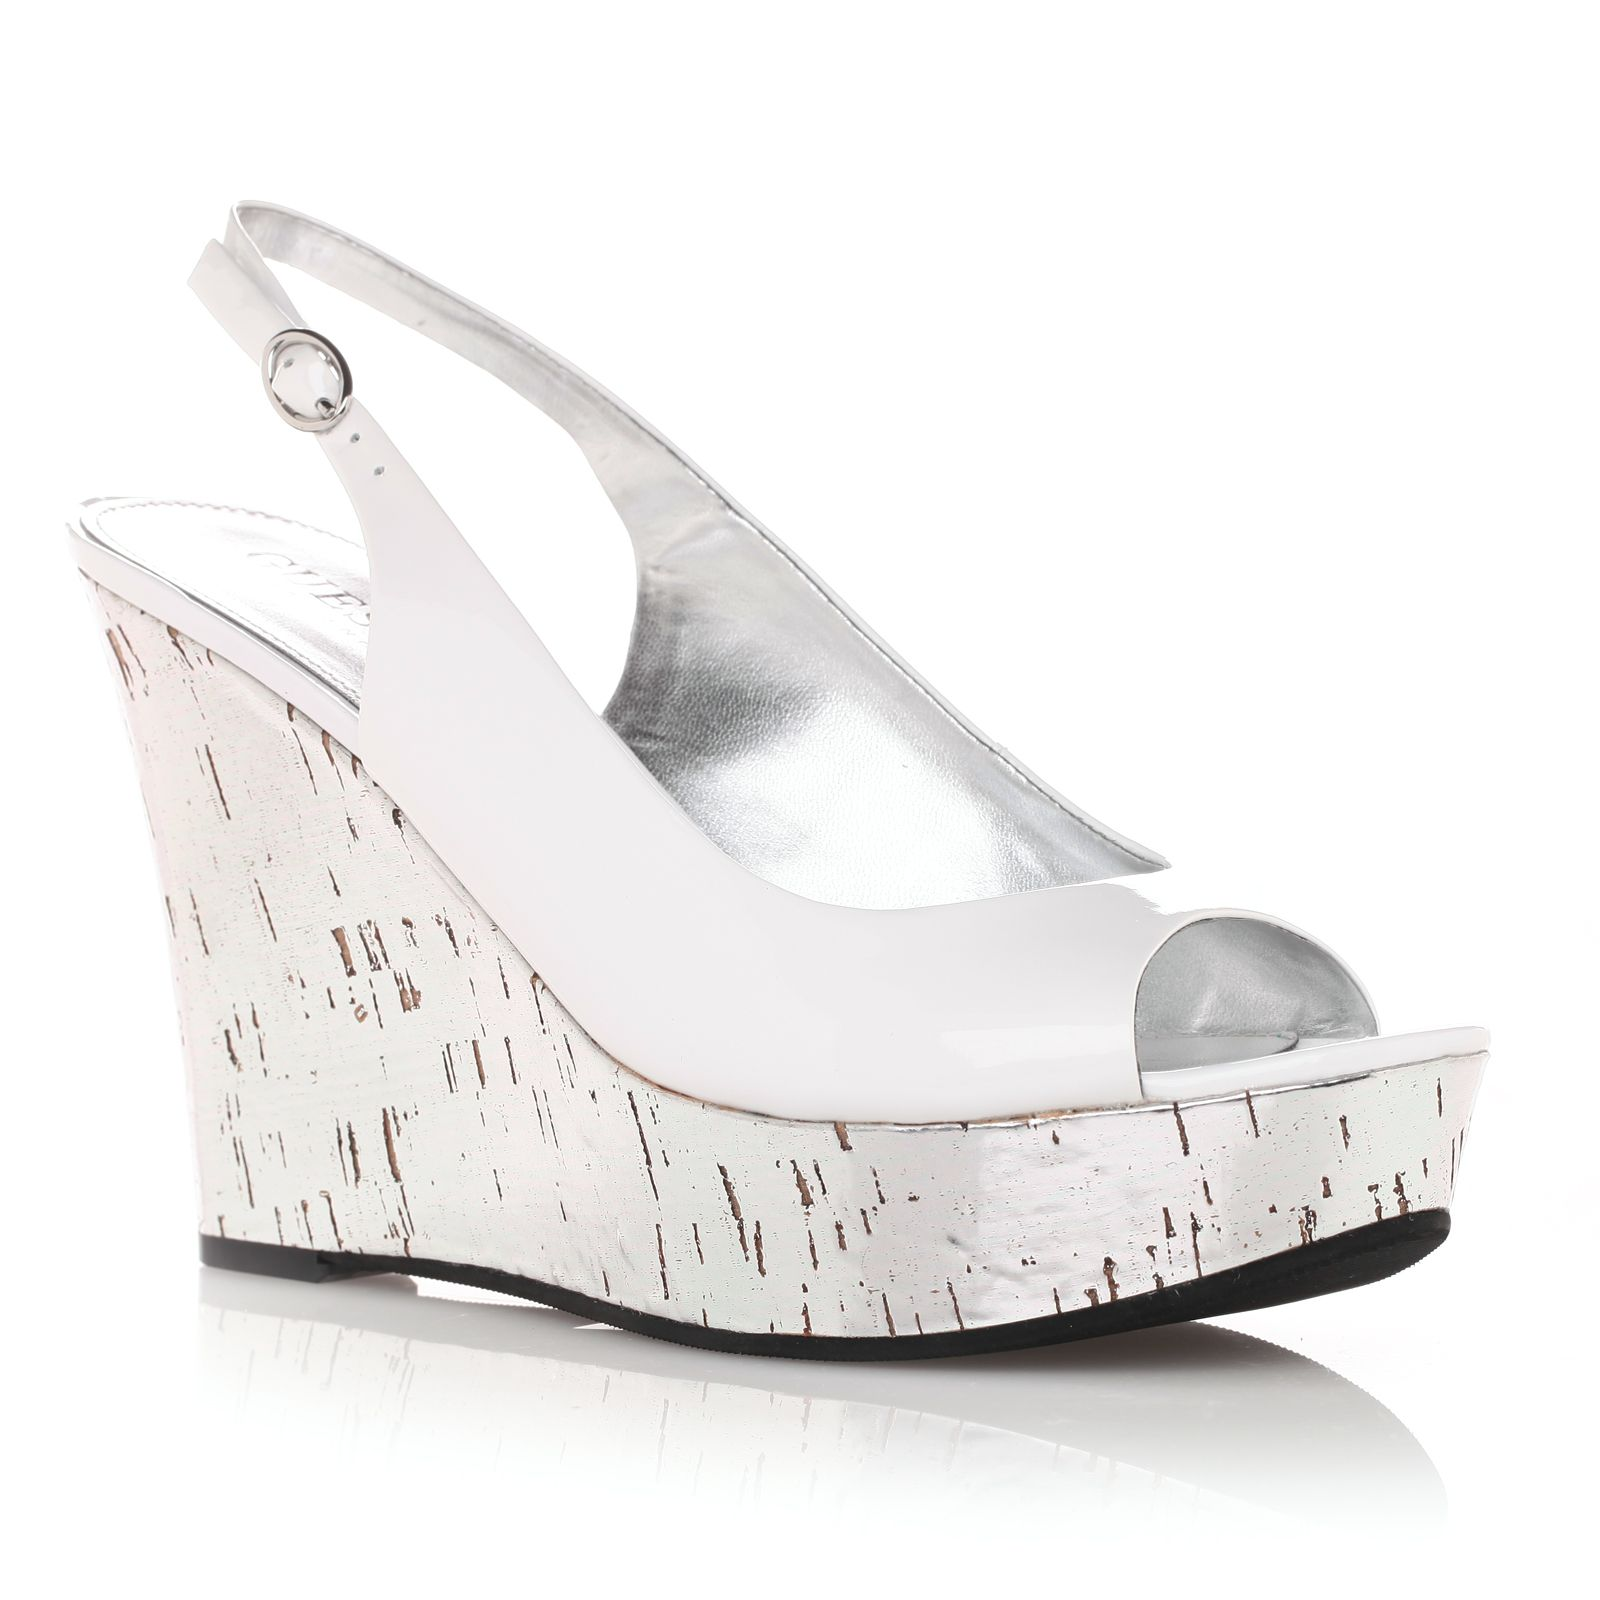 MARCIANO LOS ANGELES Guess - Chaussures à talon compensé blanches - by  Marciano b6432b63d629